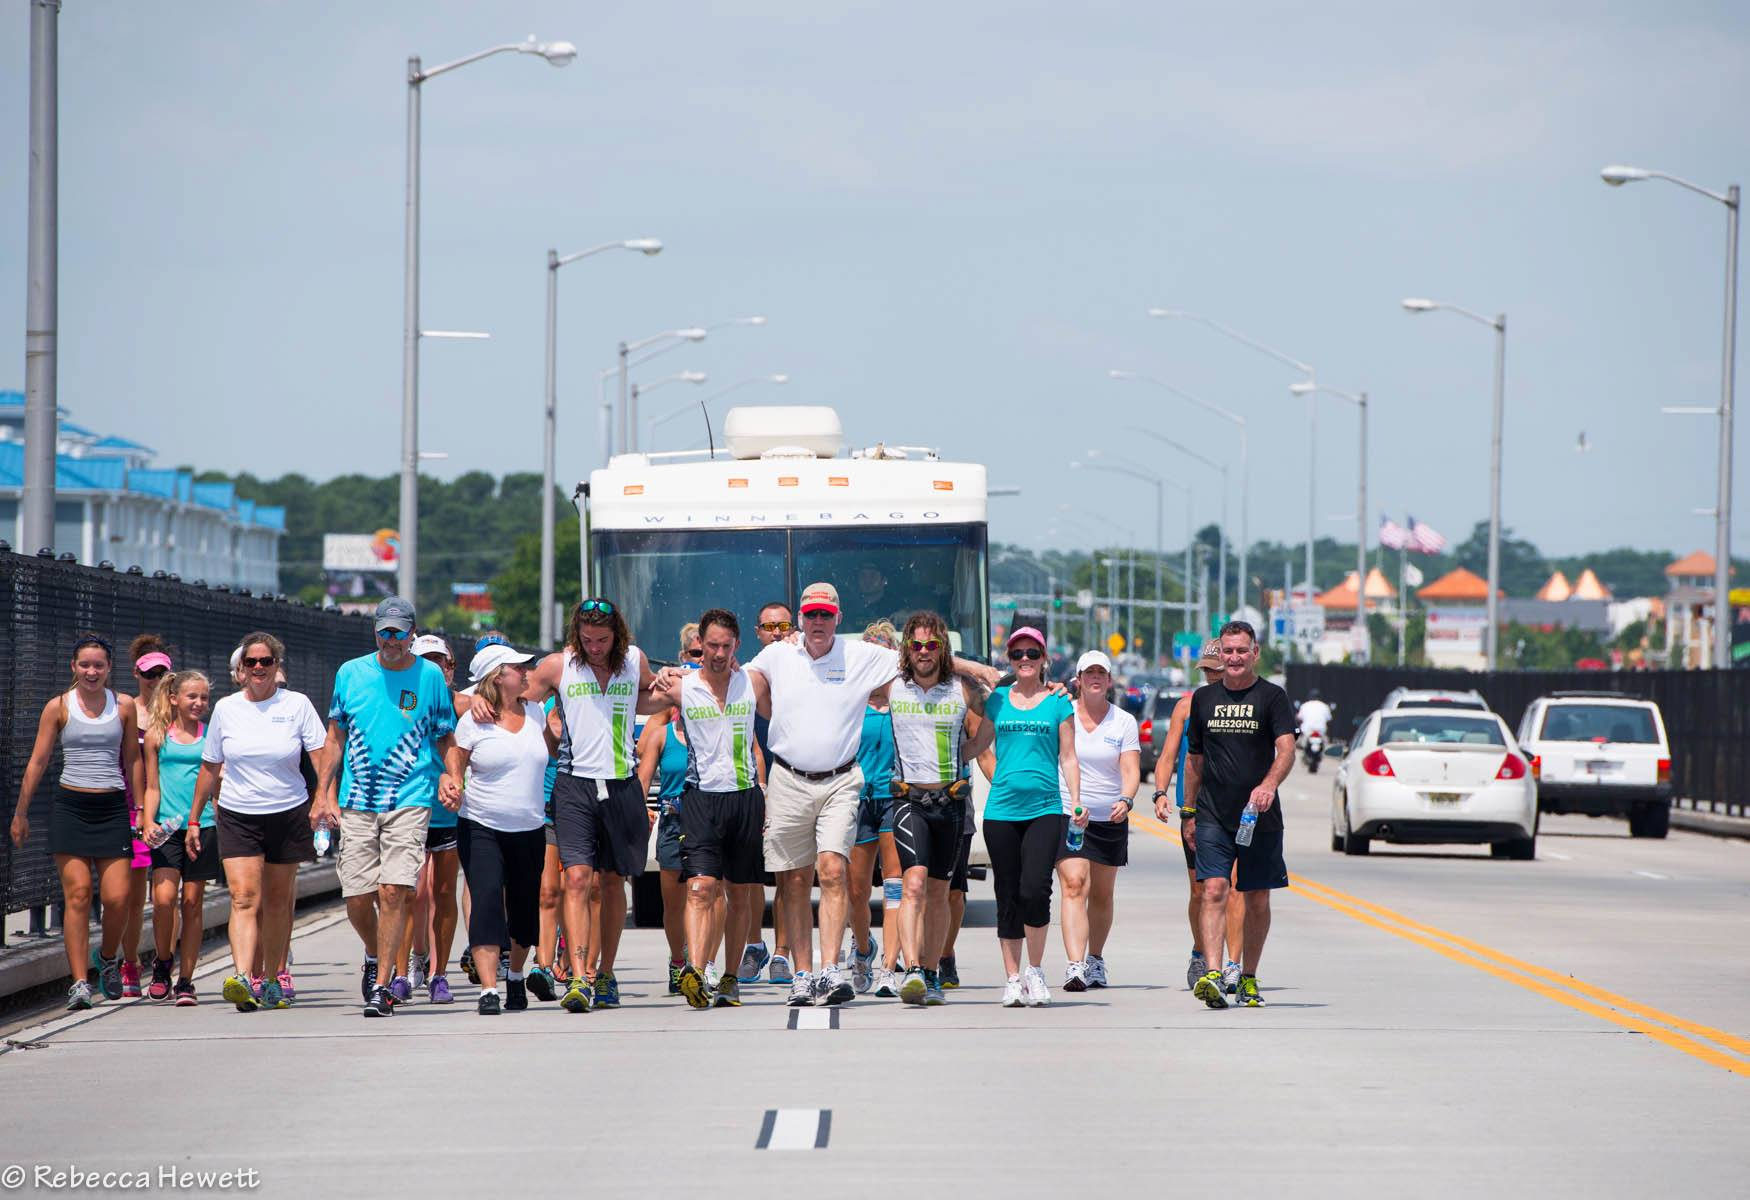 "Landon, his two running partners and several guests take the final steps to Ocean City, Maryland after 157 days running across the USA. Two ""Key To The City"" awards were awarded for successfully completing their mission, and their efforts inspired thousands around the world. July 20, 2013"